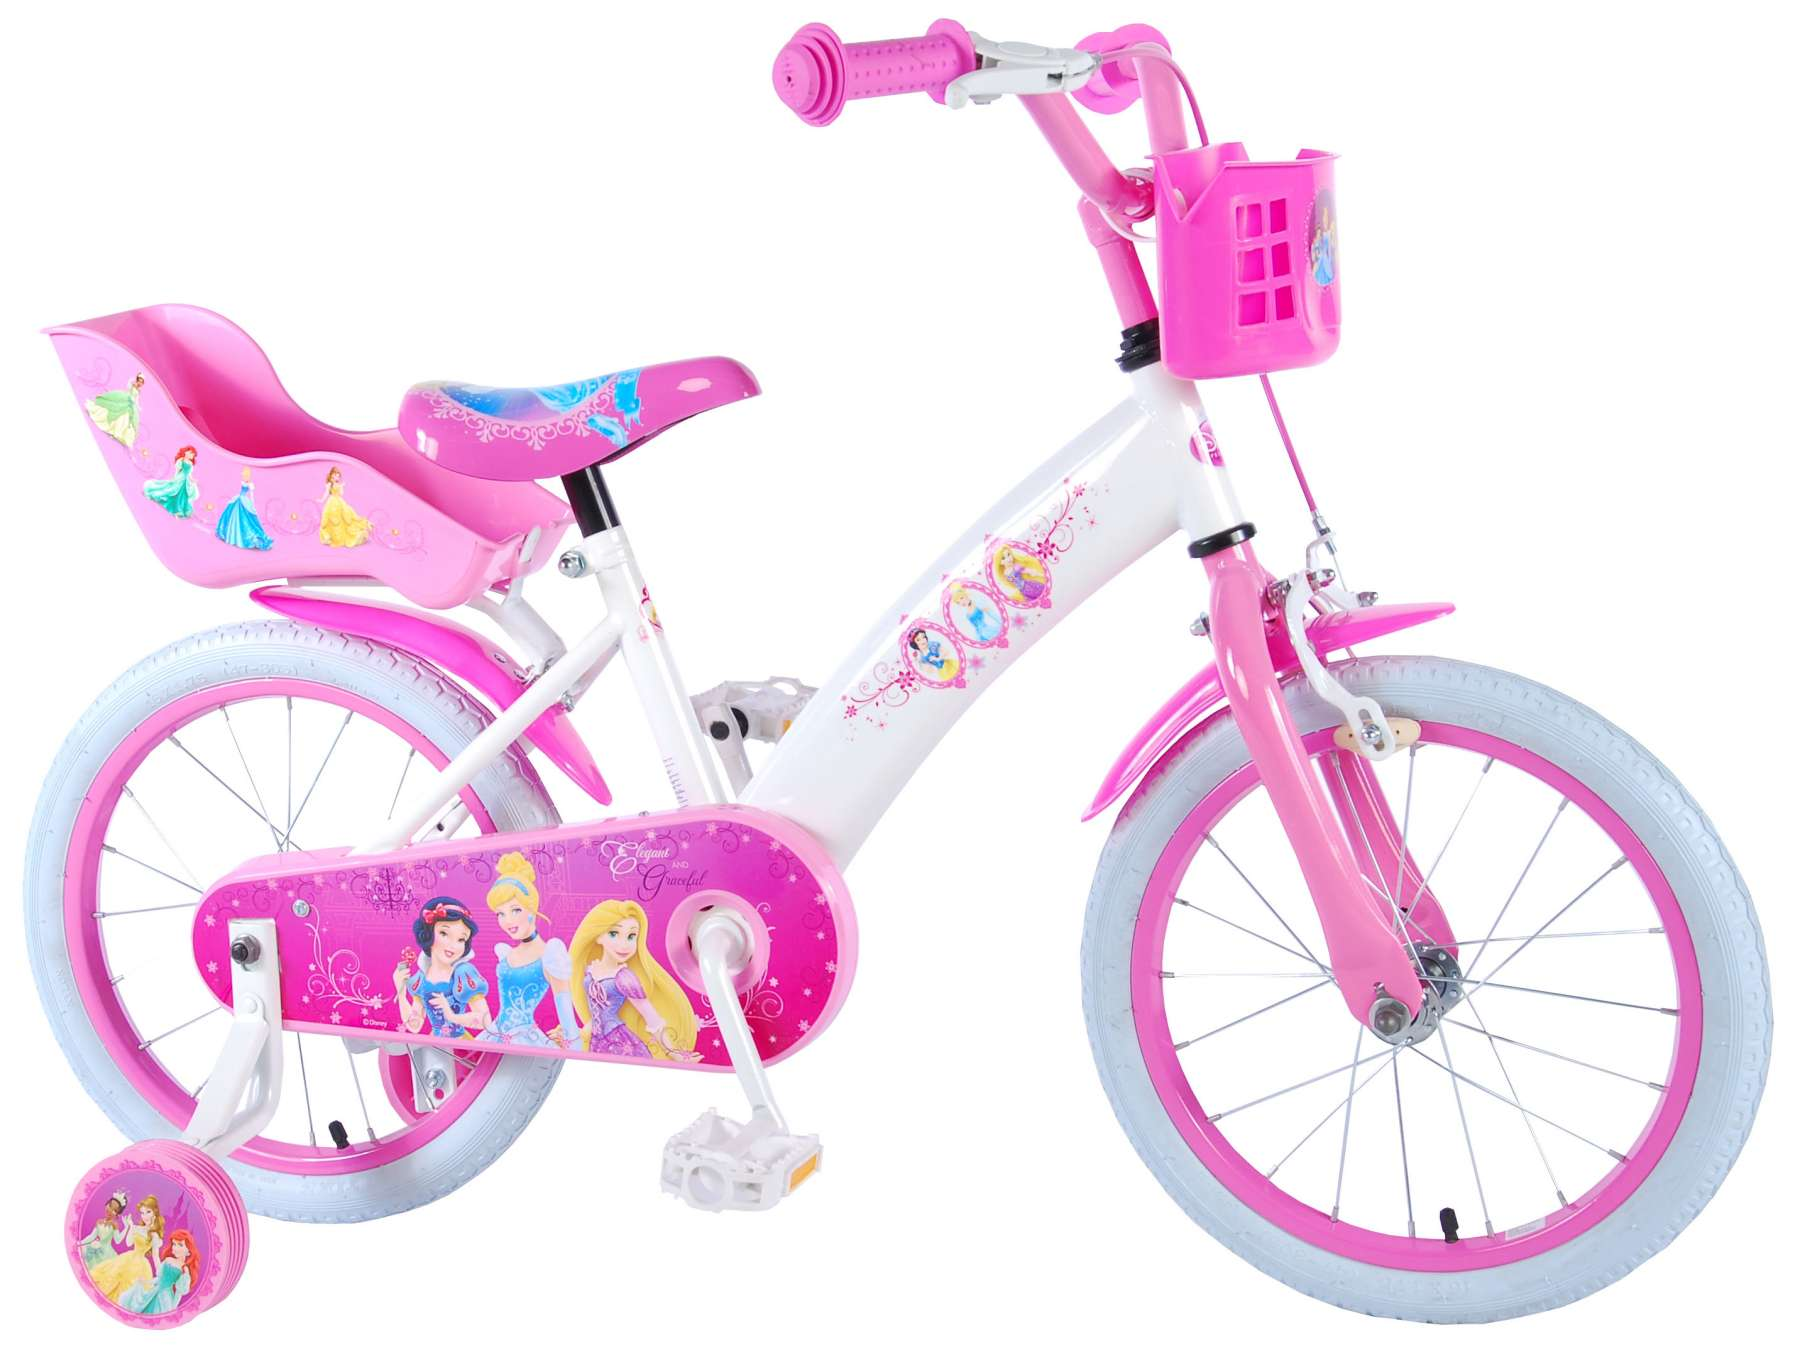 a5e62036b1d Disney Princess 16 inch girls bicycle